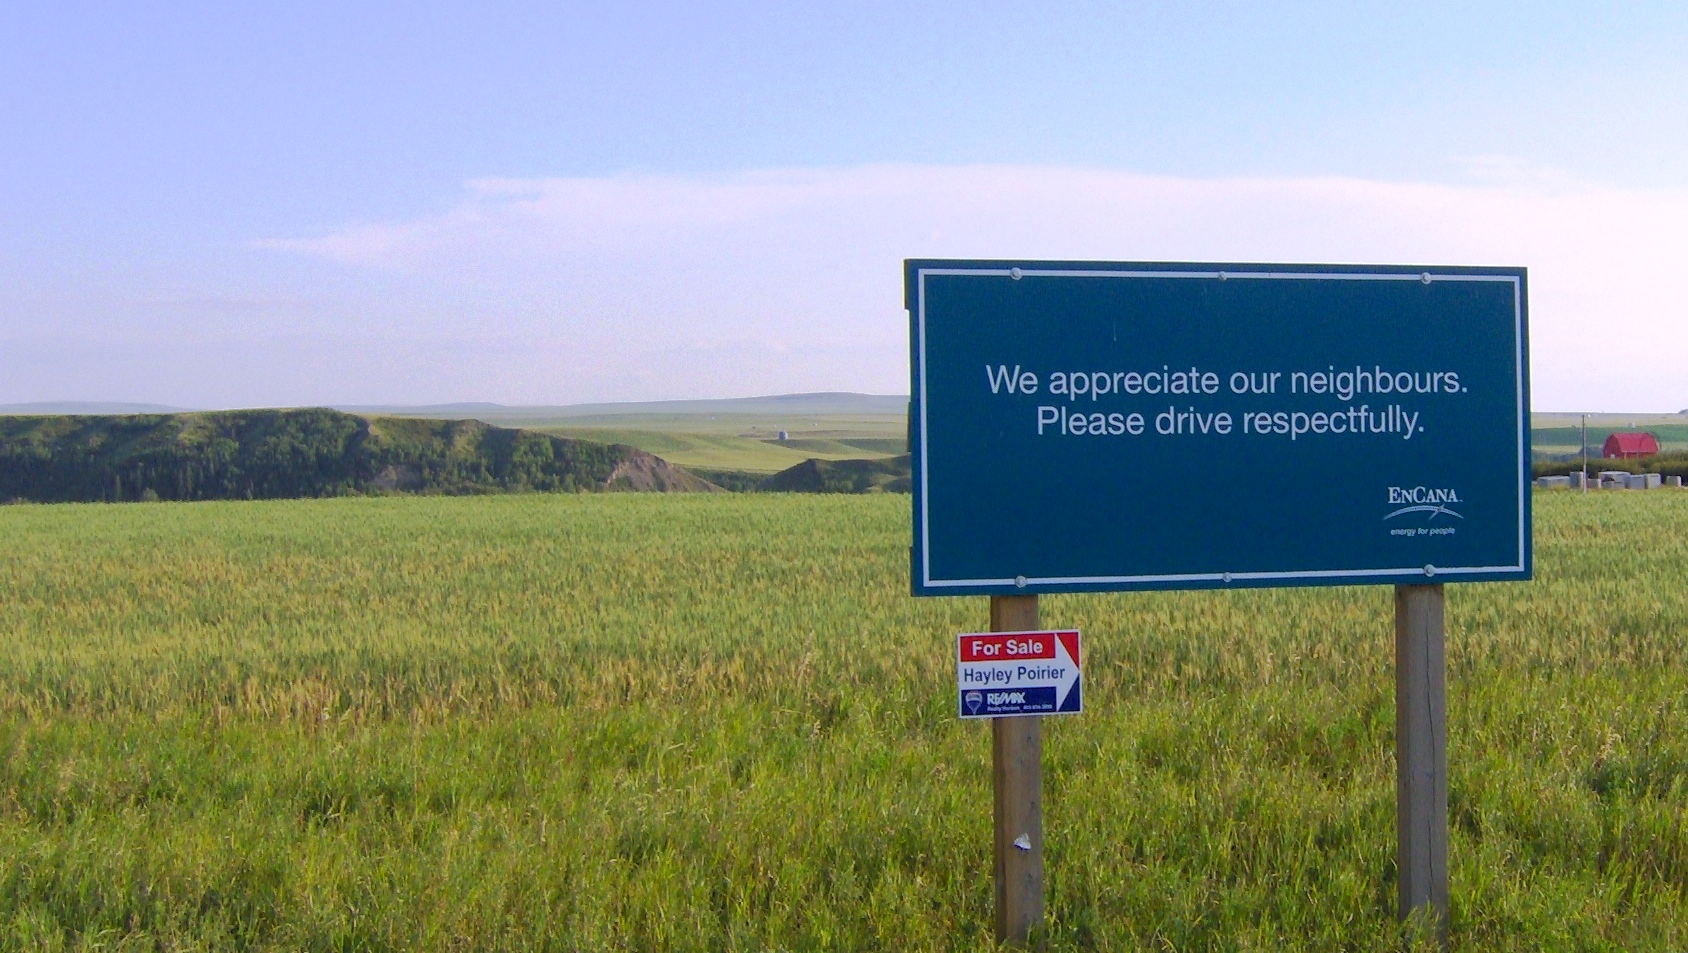 2013 08 09 Signs at Rosebud, Alberta: Encana and Remax 2.JPG